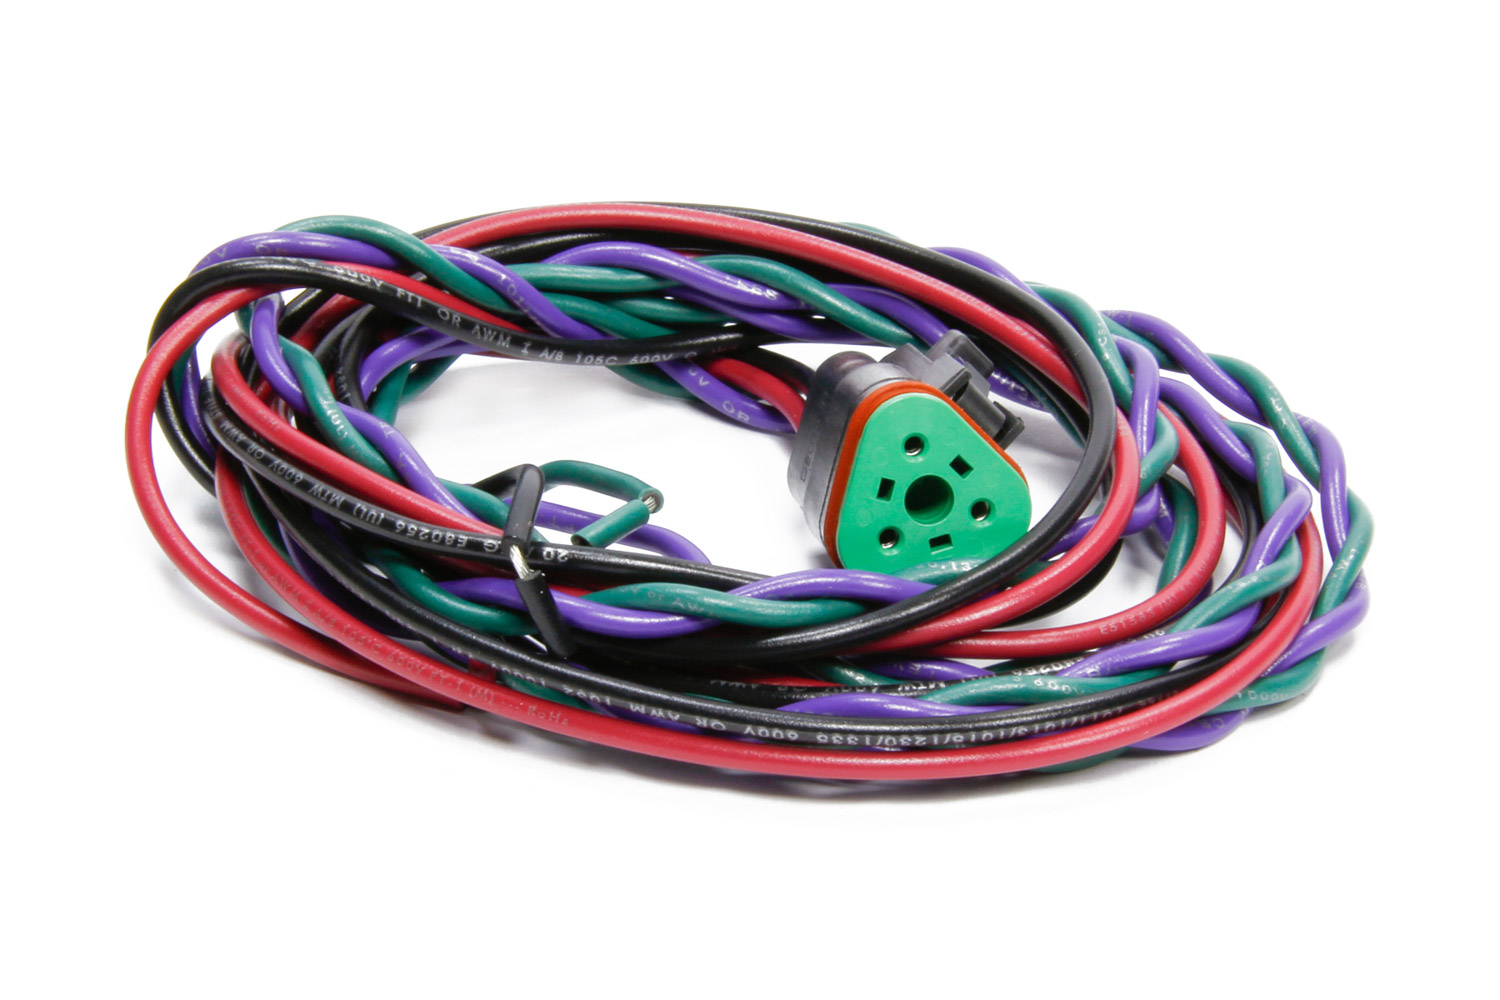 hight resolution of shop for ignition wiring harnesses racecar engineering wiring adapter from msd to crane